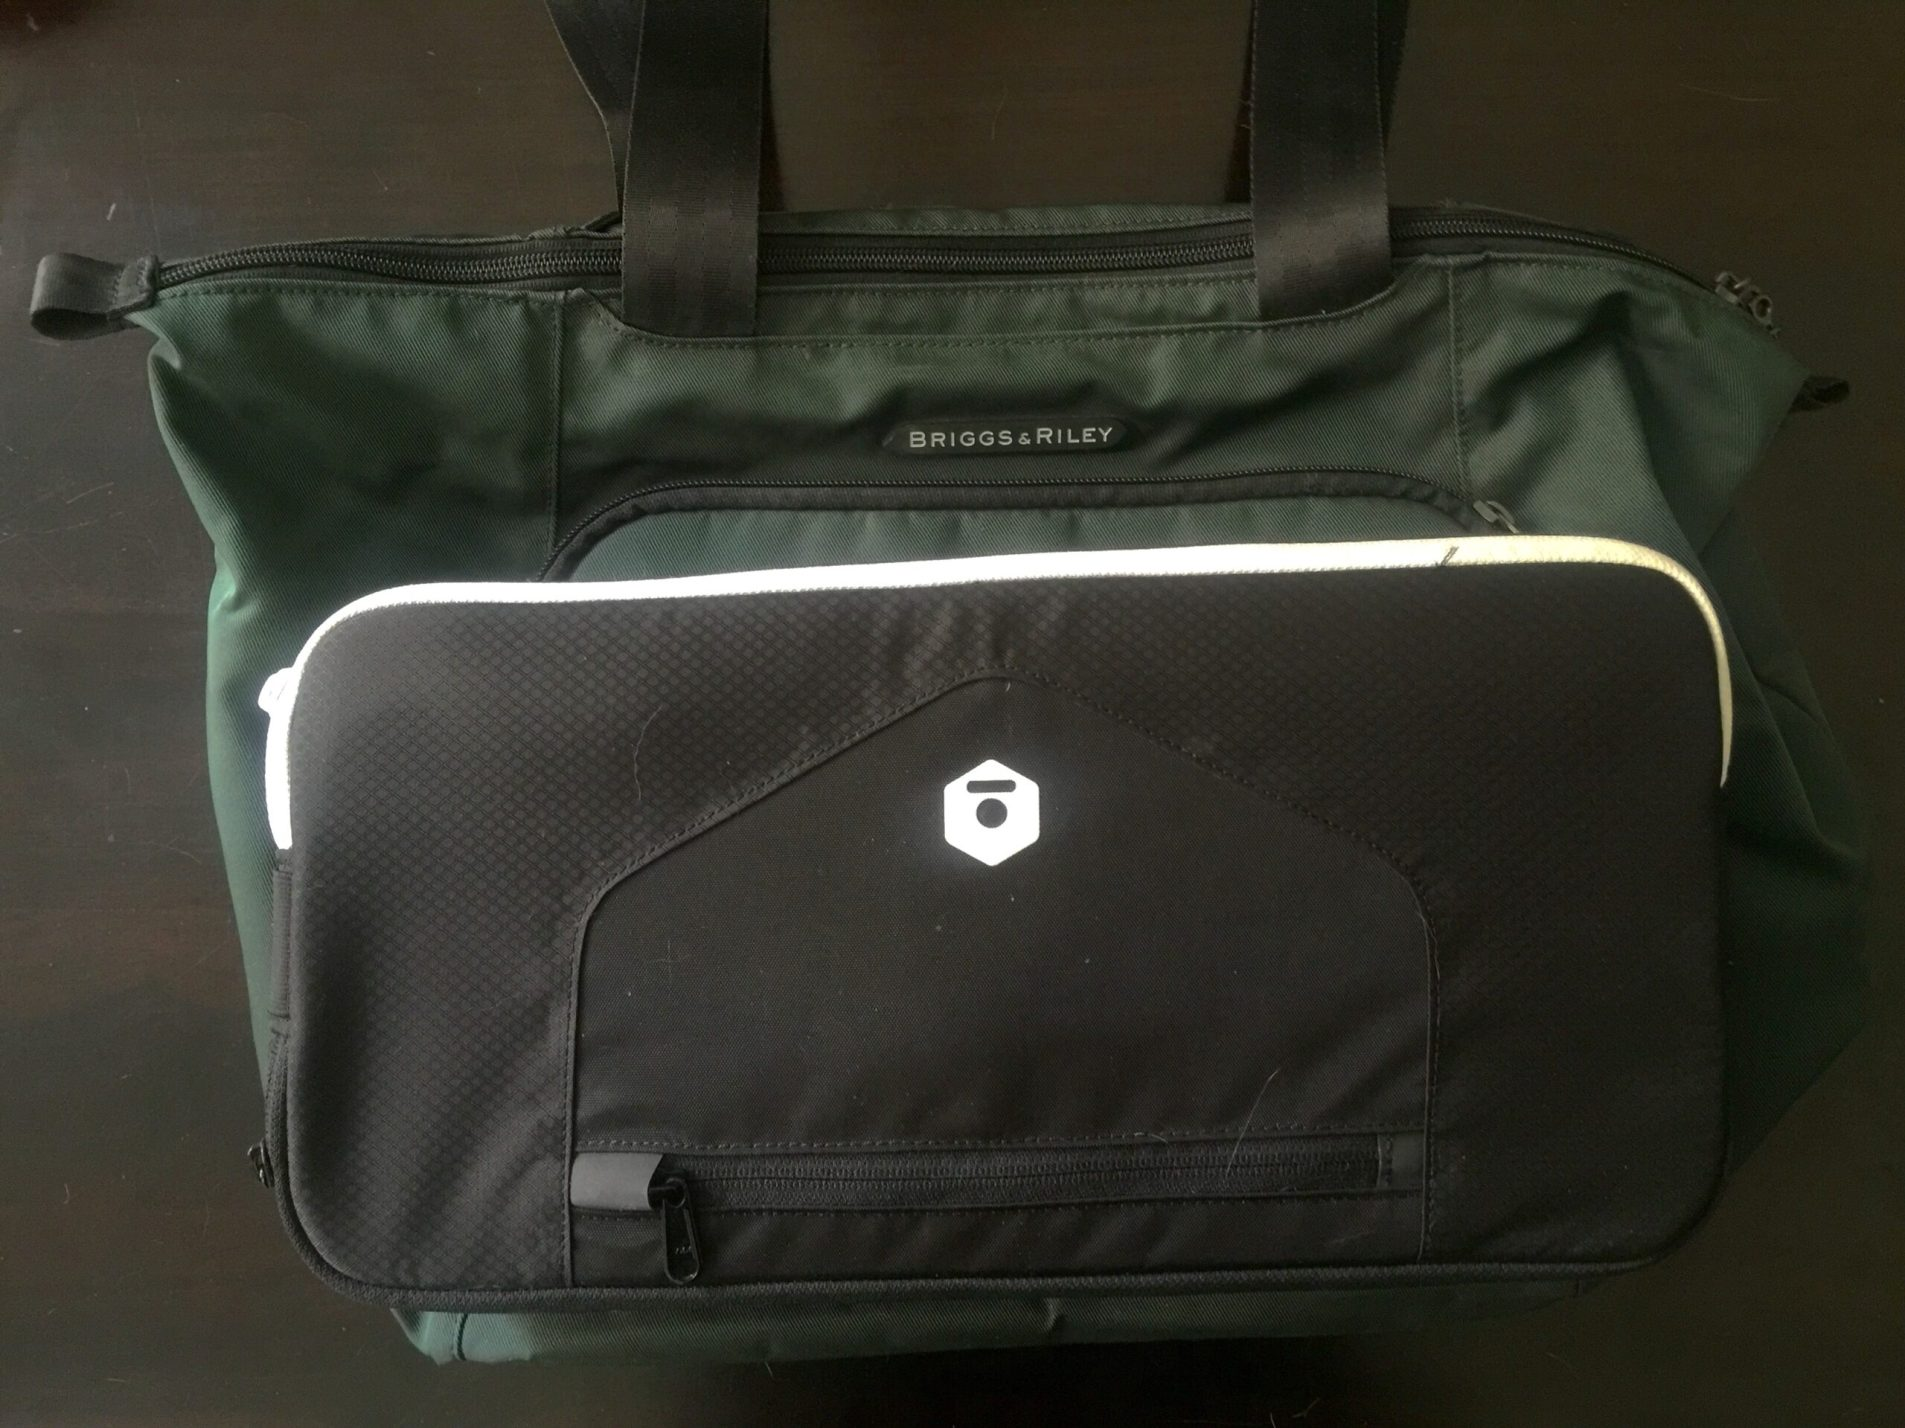 Roost case in relation to my carry-on bag (purse)